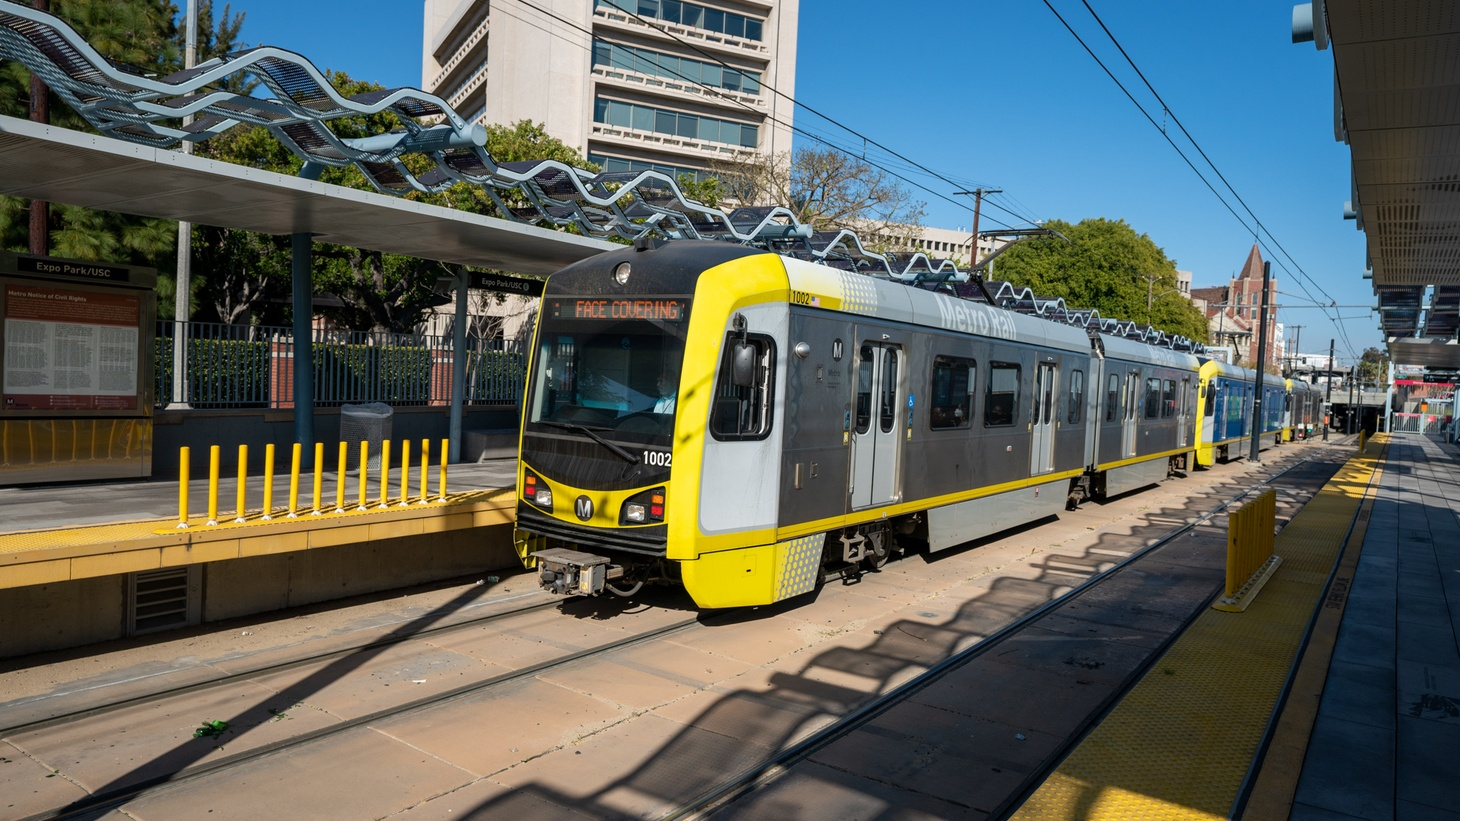 Want to learn more about your city? Consider taking an immersive adventure along the Metro Expo line, with the help of a new audio play series called Chalk Lines.